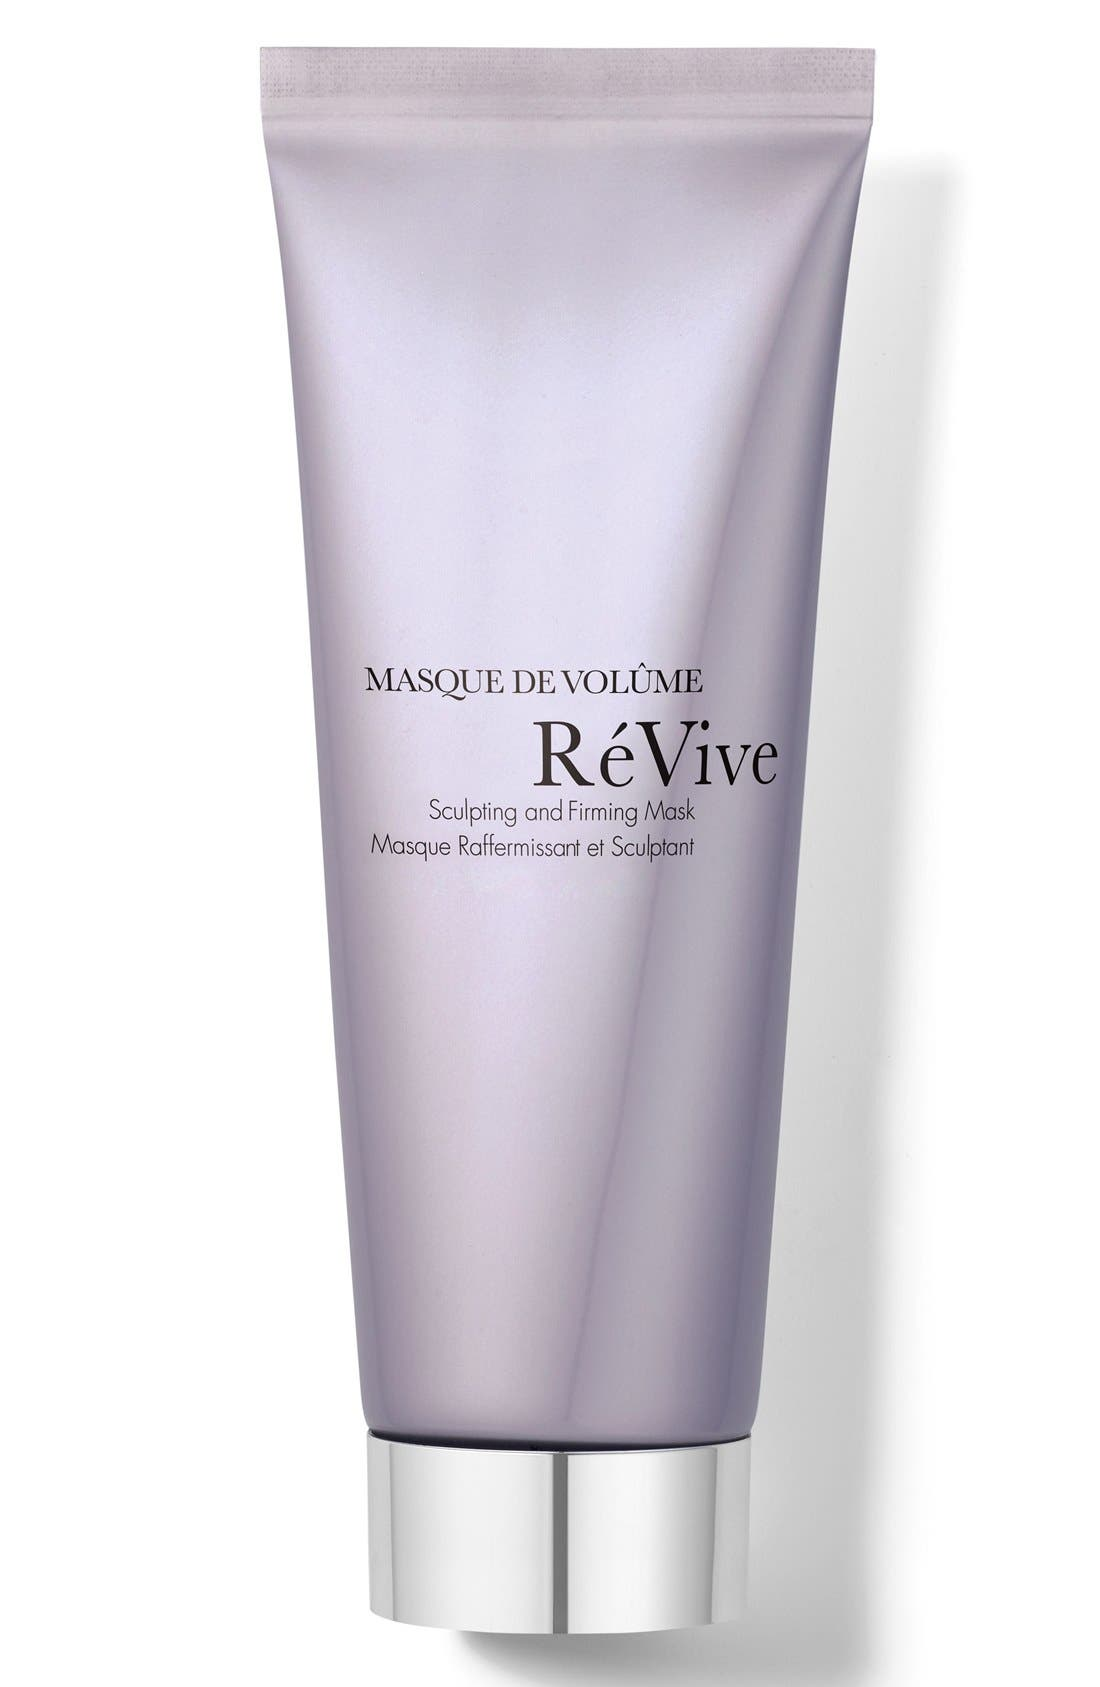 RéVive® Masque de Volûme Sculpting and Firming Mask